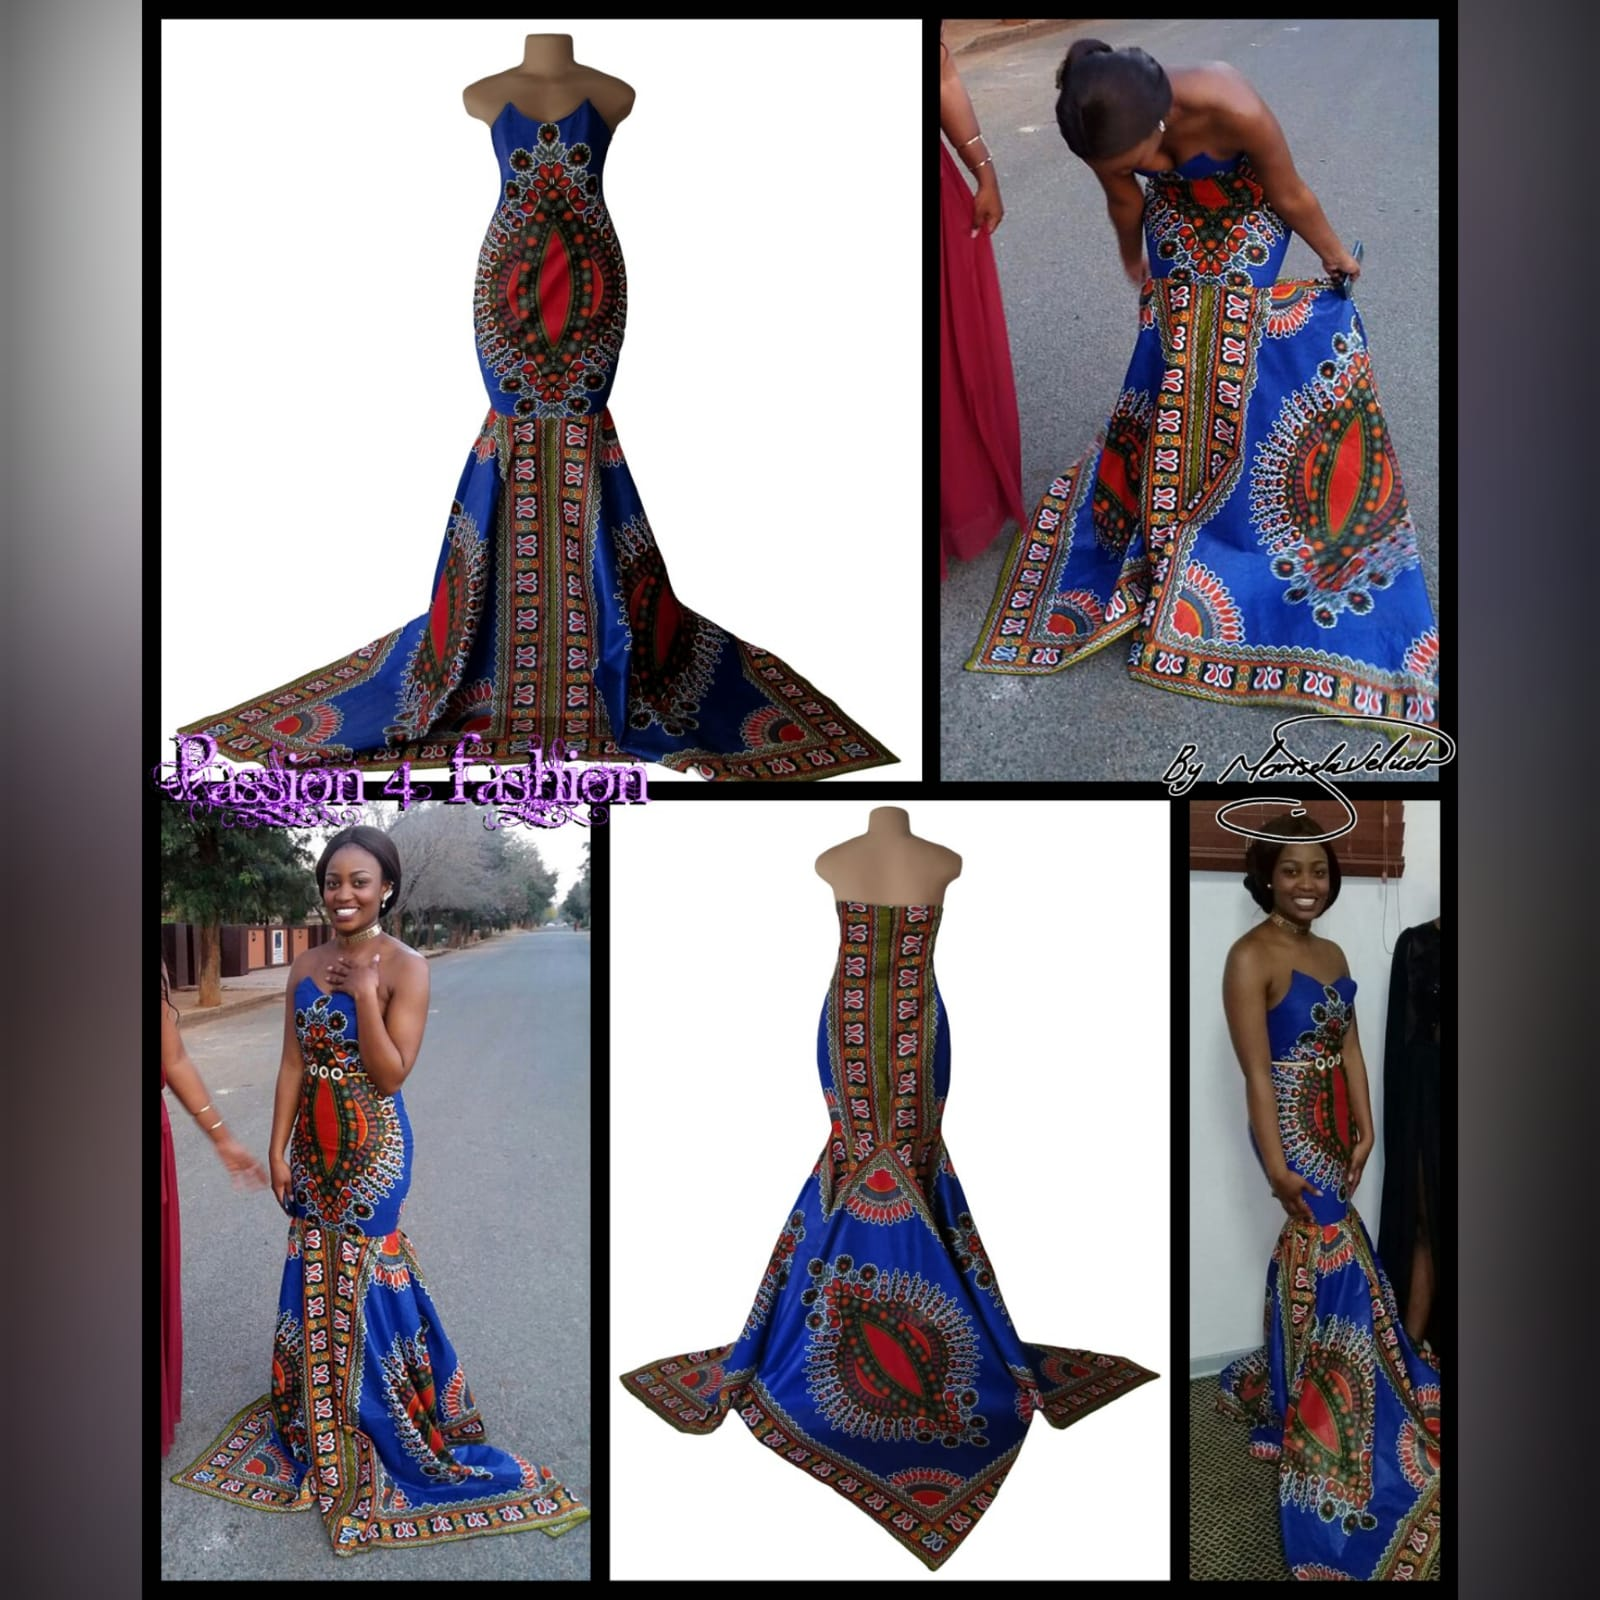 Soft mermaid formal printed dress 6 soft mermaid formal printed dress was worn for a special occasion. This mermaid dress is made with a traditional dashiki print, with a 3 point train.